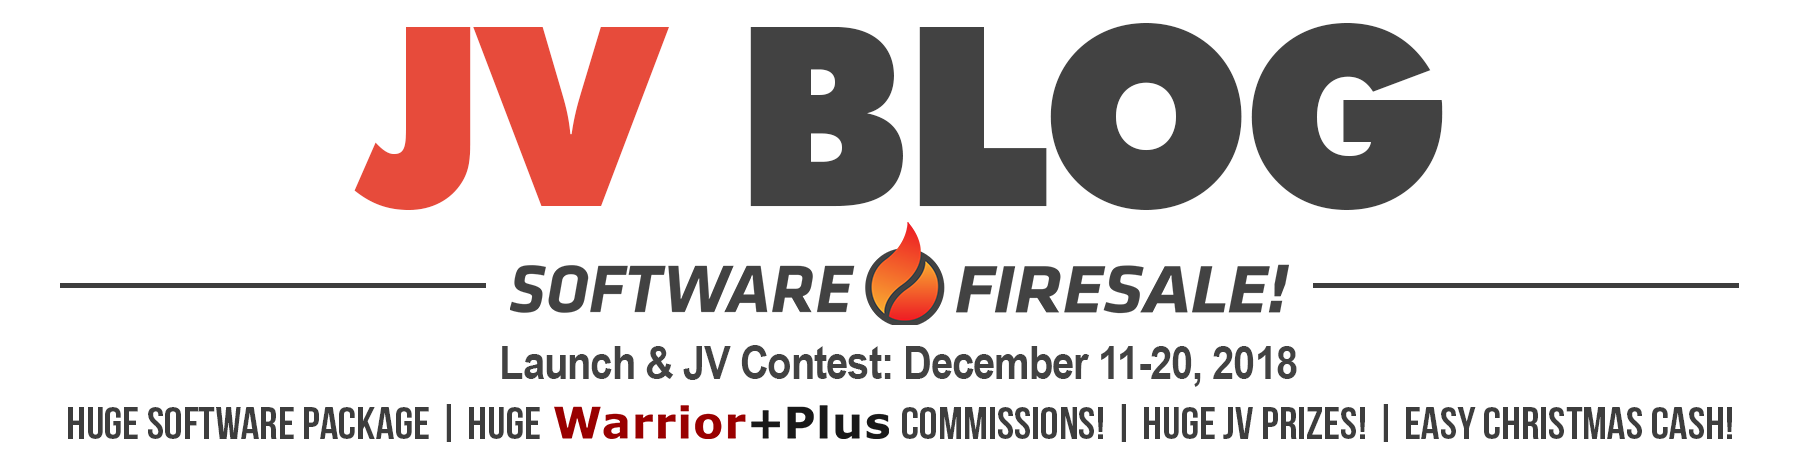 Software Firesale | JV Blog header image